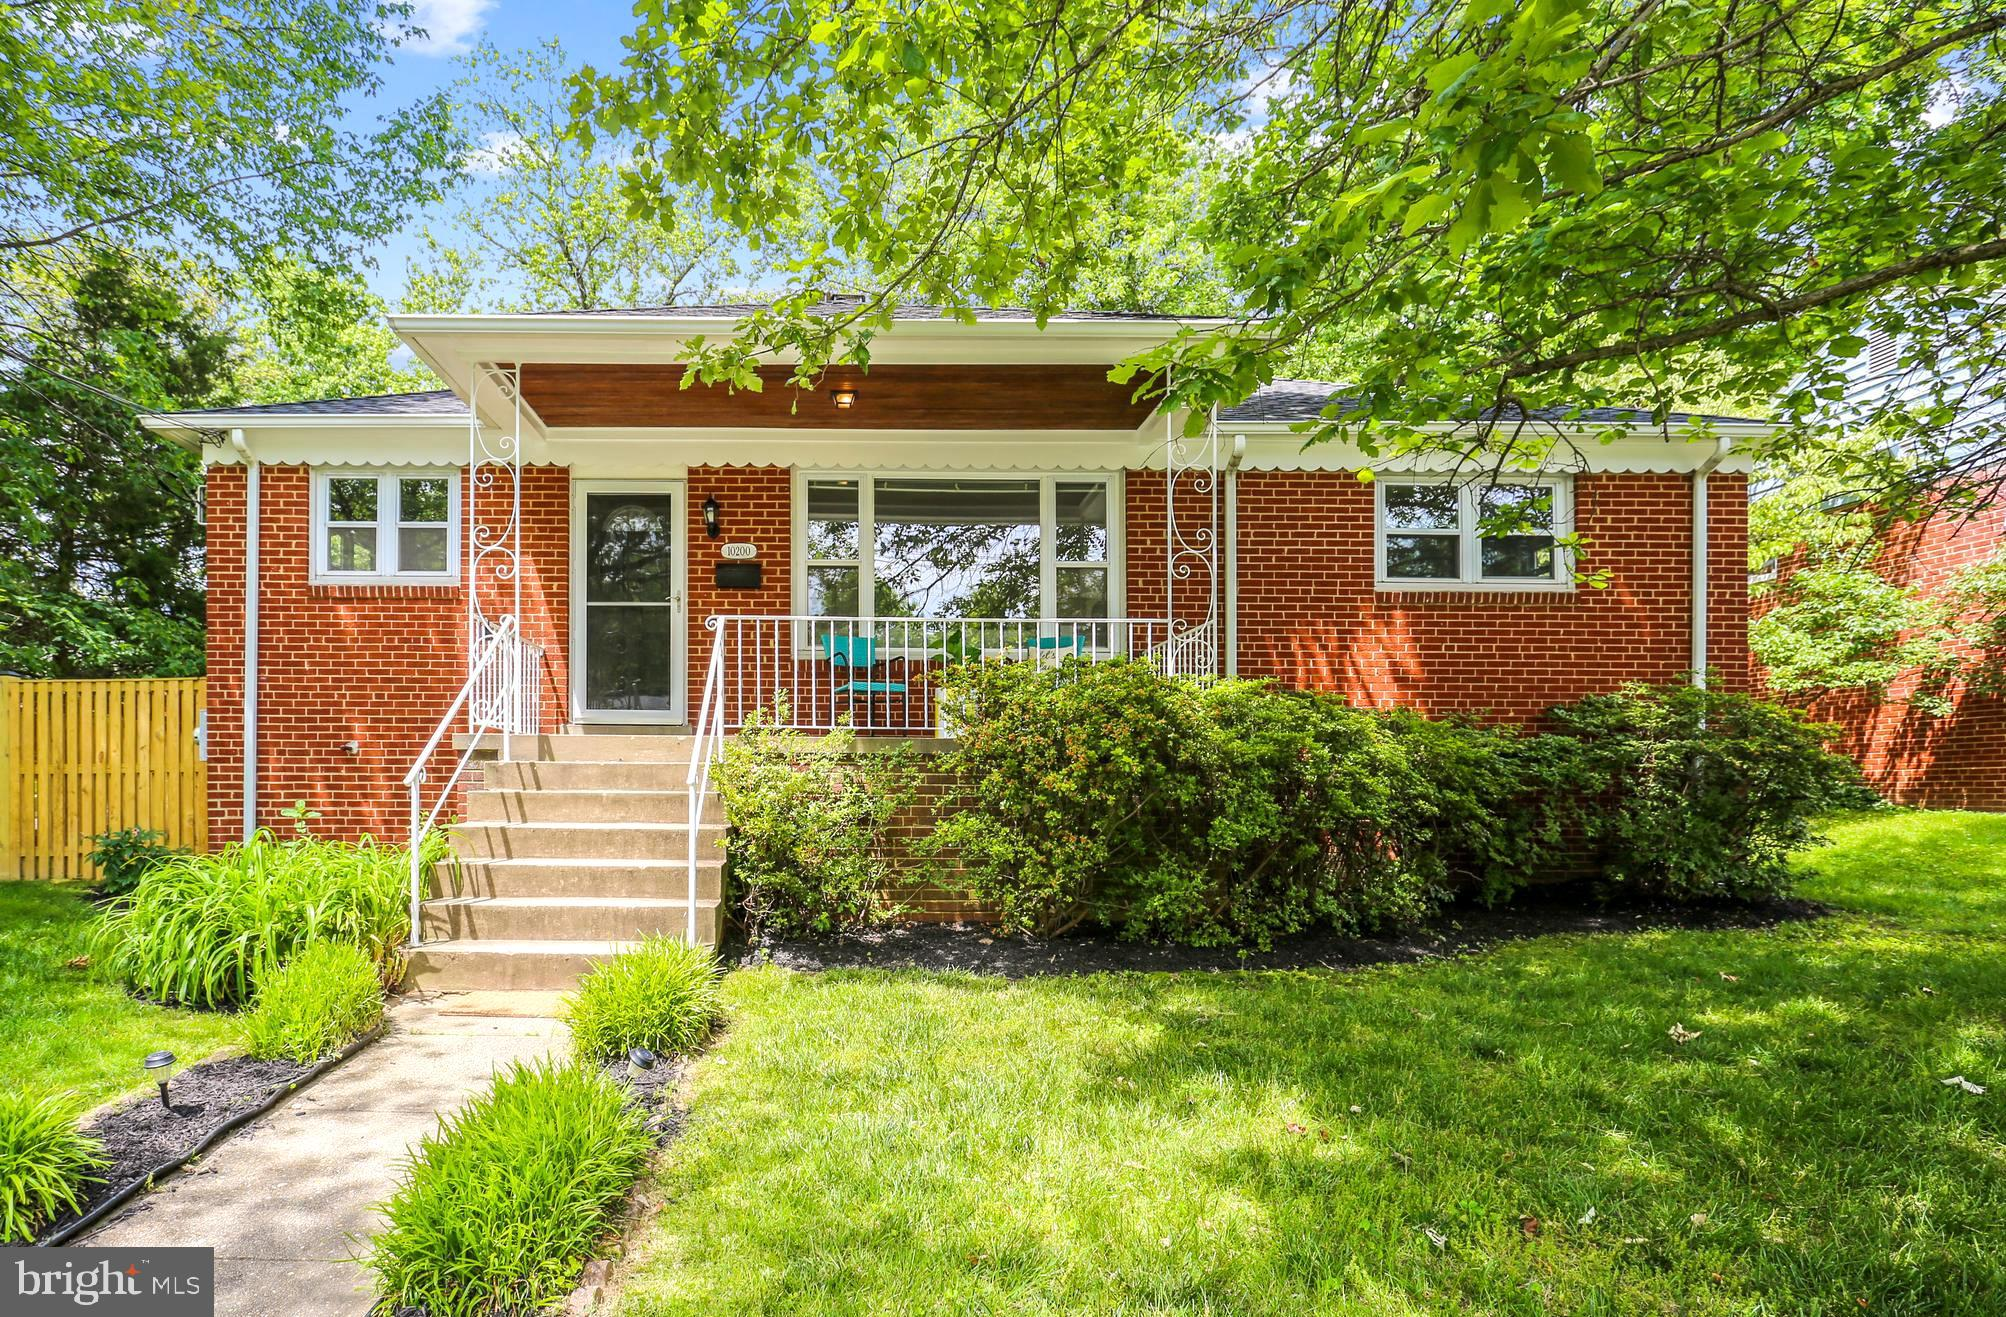 This wonderful, well-maintained and fully updated rambler will make a great home for a lucky buyer! Situated in the super convenient and friendly neighborhood of Carroll Knolls, you are just outside of the Beltway, with easy access to Metro, the MARC train, and all major commuter routes. Working from home? There are 2 perfect home offices on the lower level (not included in the bedroom count)! You will be welcomed to the house by the inviting front porch - perfect for social distanced visits. Once you enter the house, you will love the open floor plan, the freshly painted walls and the beautifully refinished hardwood floors. The spacious living room has a wood burning fireplace and beautiful, large picture windows. It opens into the dining room with a stainless steel ceiling fan. The whole kitchen has been custom designed and remodeled top to bottom and now features high-end stainless steel appliances, plus great open shelves. The main level offers 3 bedrooms and a remodeled bath. There are new light fixtures all throughout the house as well. On the (fully waterproofed) lower level you will find the great family room and 2 extra rooms - these could be used as a guest room, office, home gym, au-pair suite - the possibilities are endless! There is also a convenient newer full bathroom with a shower. This level has a lot of additional storage (even a potential wine cellar!), and a work room with a bench. The TREX deck was built 5 years ago and features built-in seating and lights.  You can enjoy your outdoor dinners and parties in the privacy of your backyard that is fully fenced-in. This house has been exceptionally well taken care of and fully updated - now it's ready for a new owner. Call Alexa with any questions!